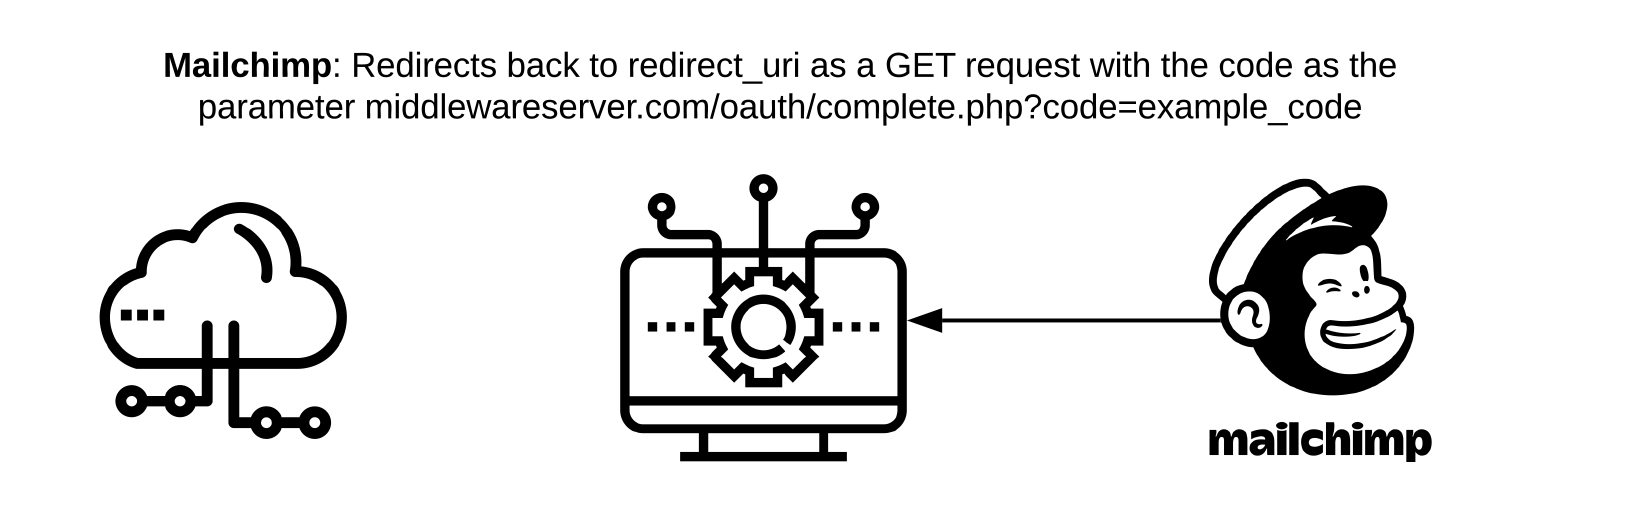 Mailchimp redirects back to redirect_uri as a GET request with the code as the parameter middlewareserver.com/oauth/complete.php?code=example_code